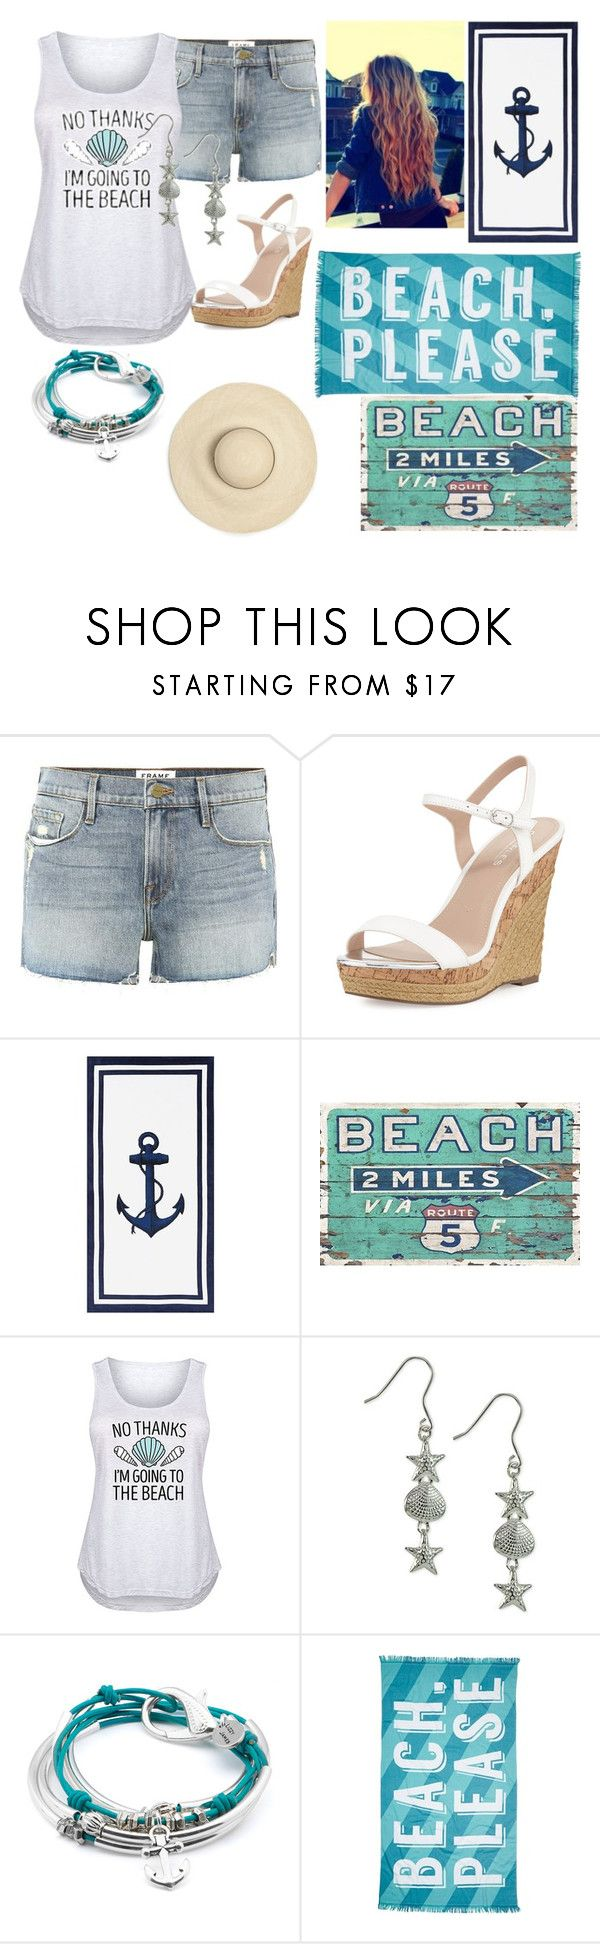 """beach style"" by annabethjames ❤ liked on Polyvore featuring Frame, Charles by Charles David, Pottery Barn, Giani Bernini, Lizzy James, Nordstrom Rack and plus size clothing"